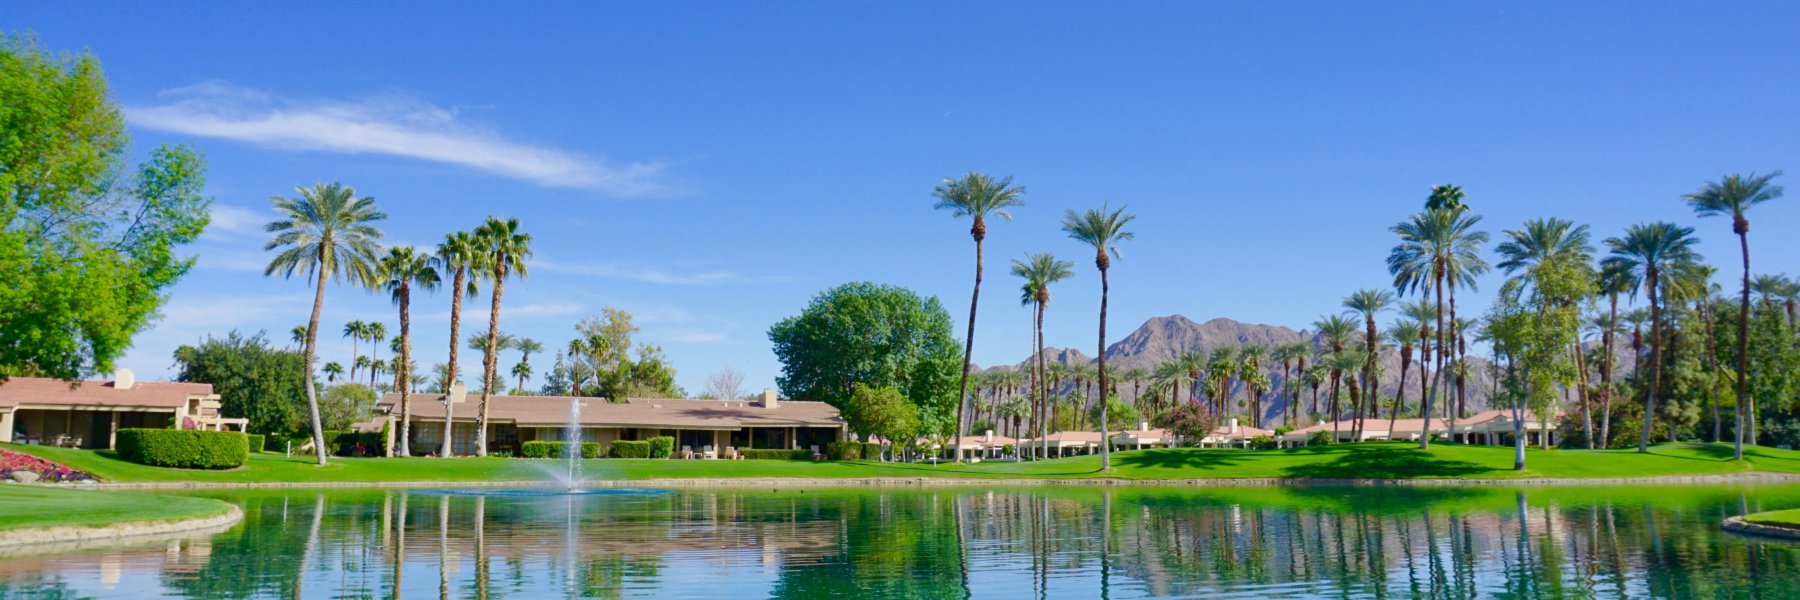 Desert Horizons Country Club is a community of homes in Indian Wells, California